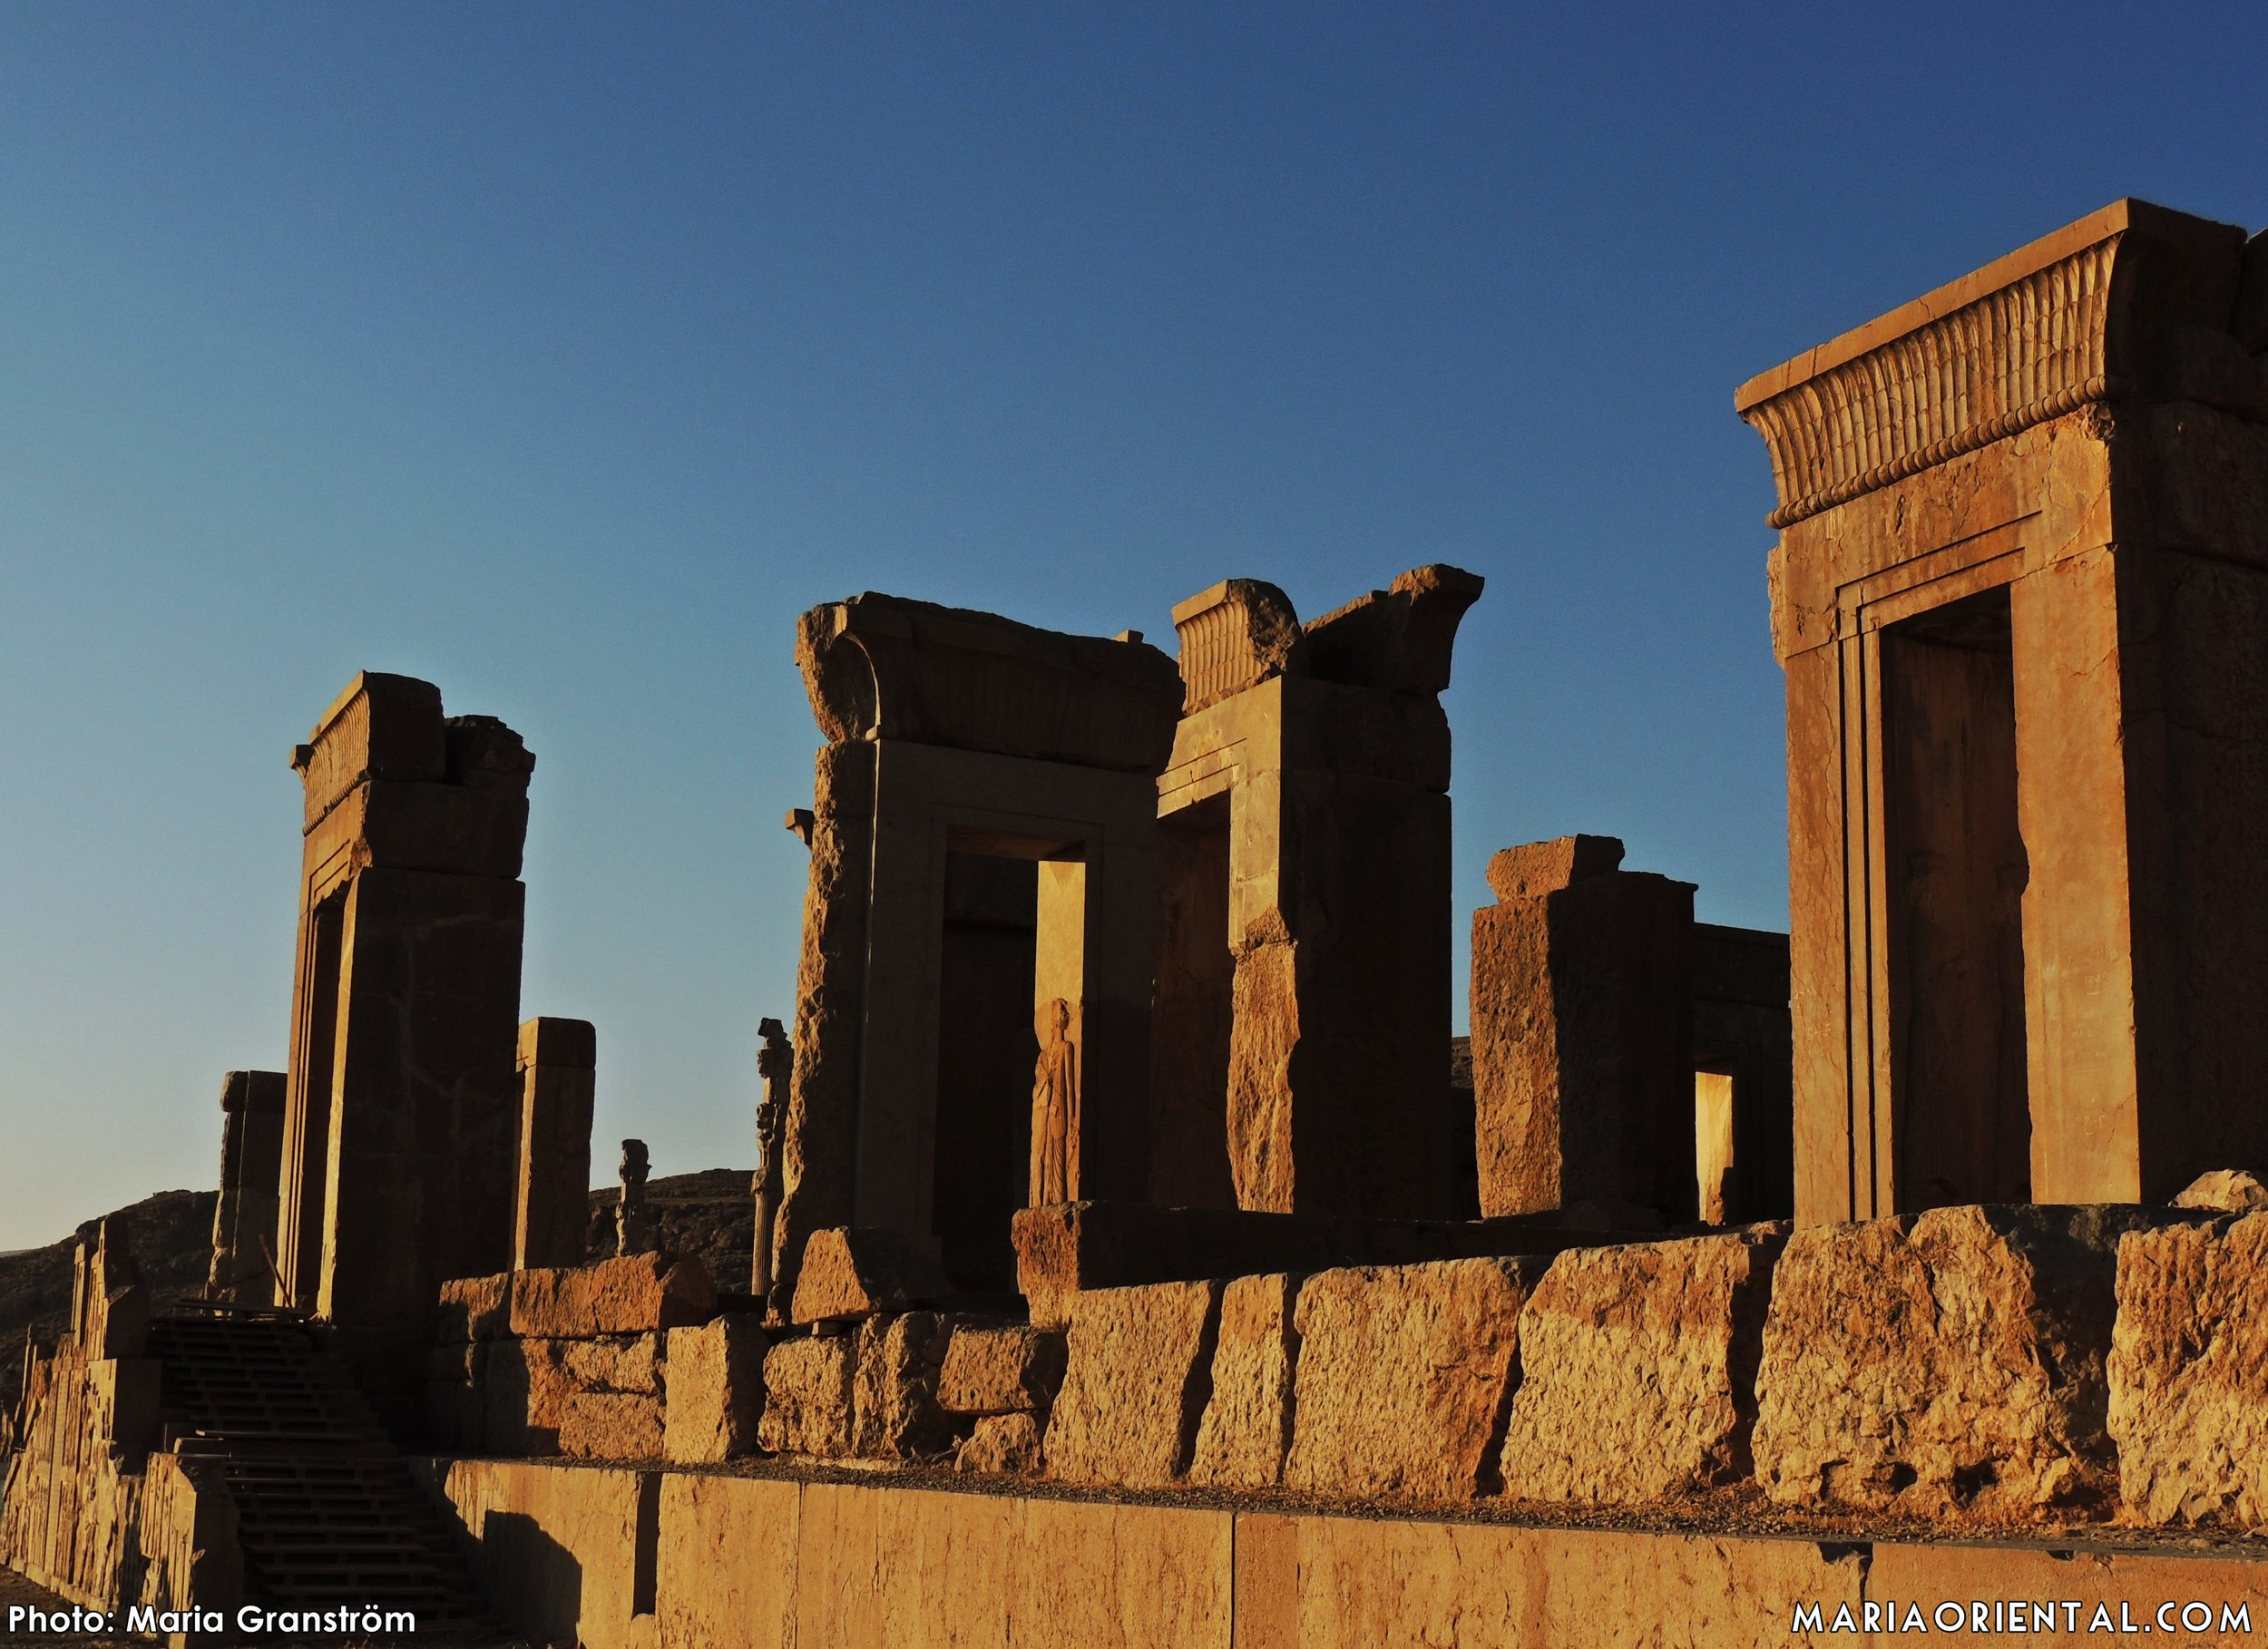 I guess this would be the most classic picture of Persepolis.